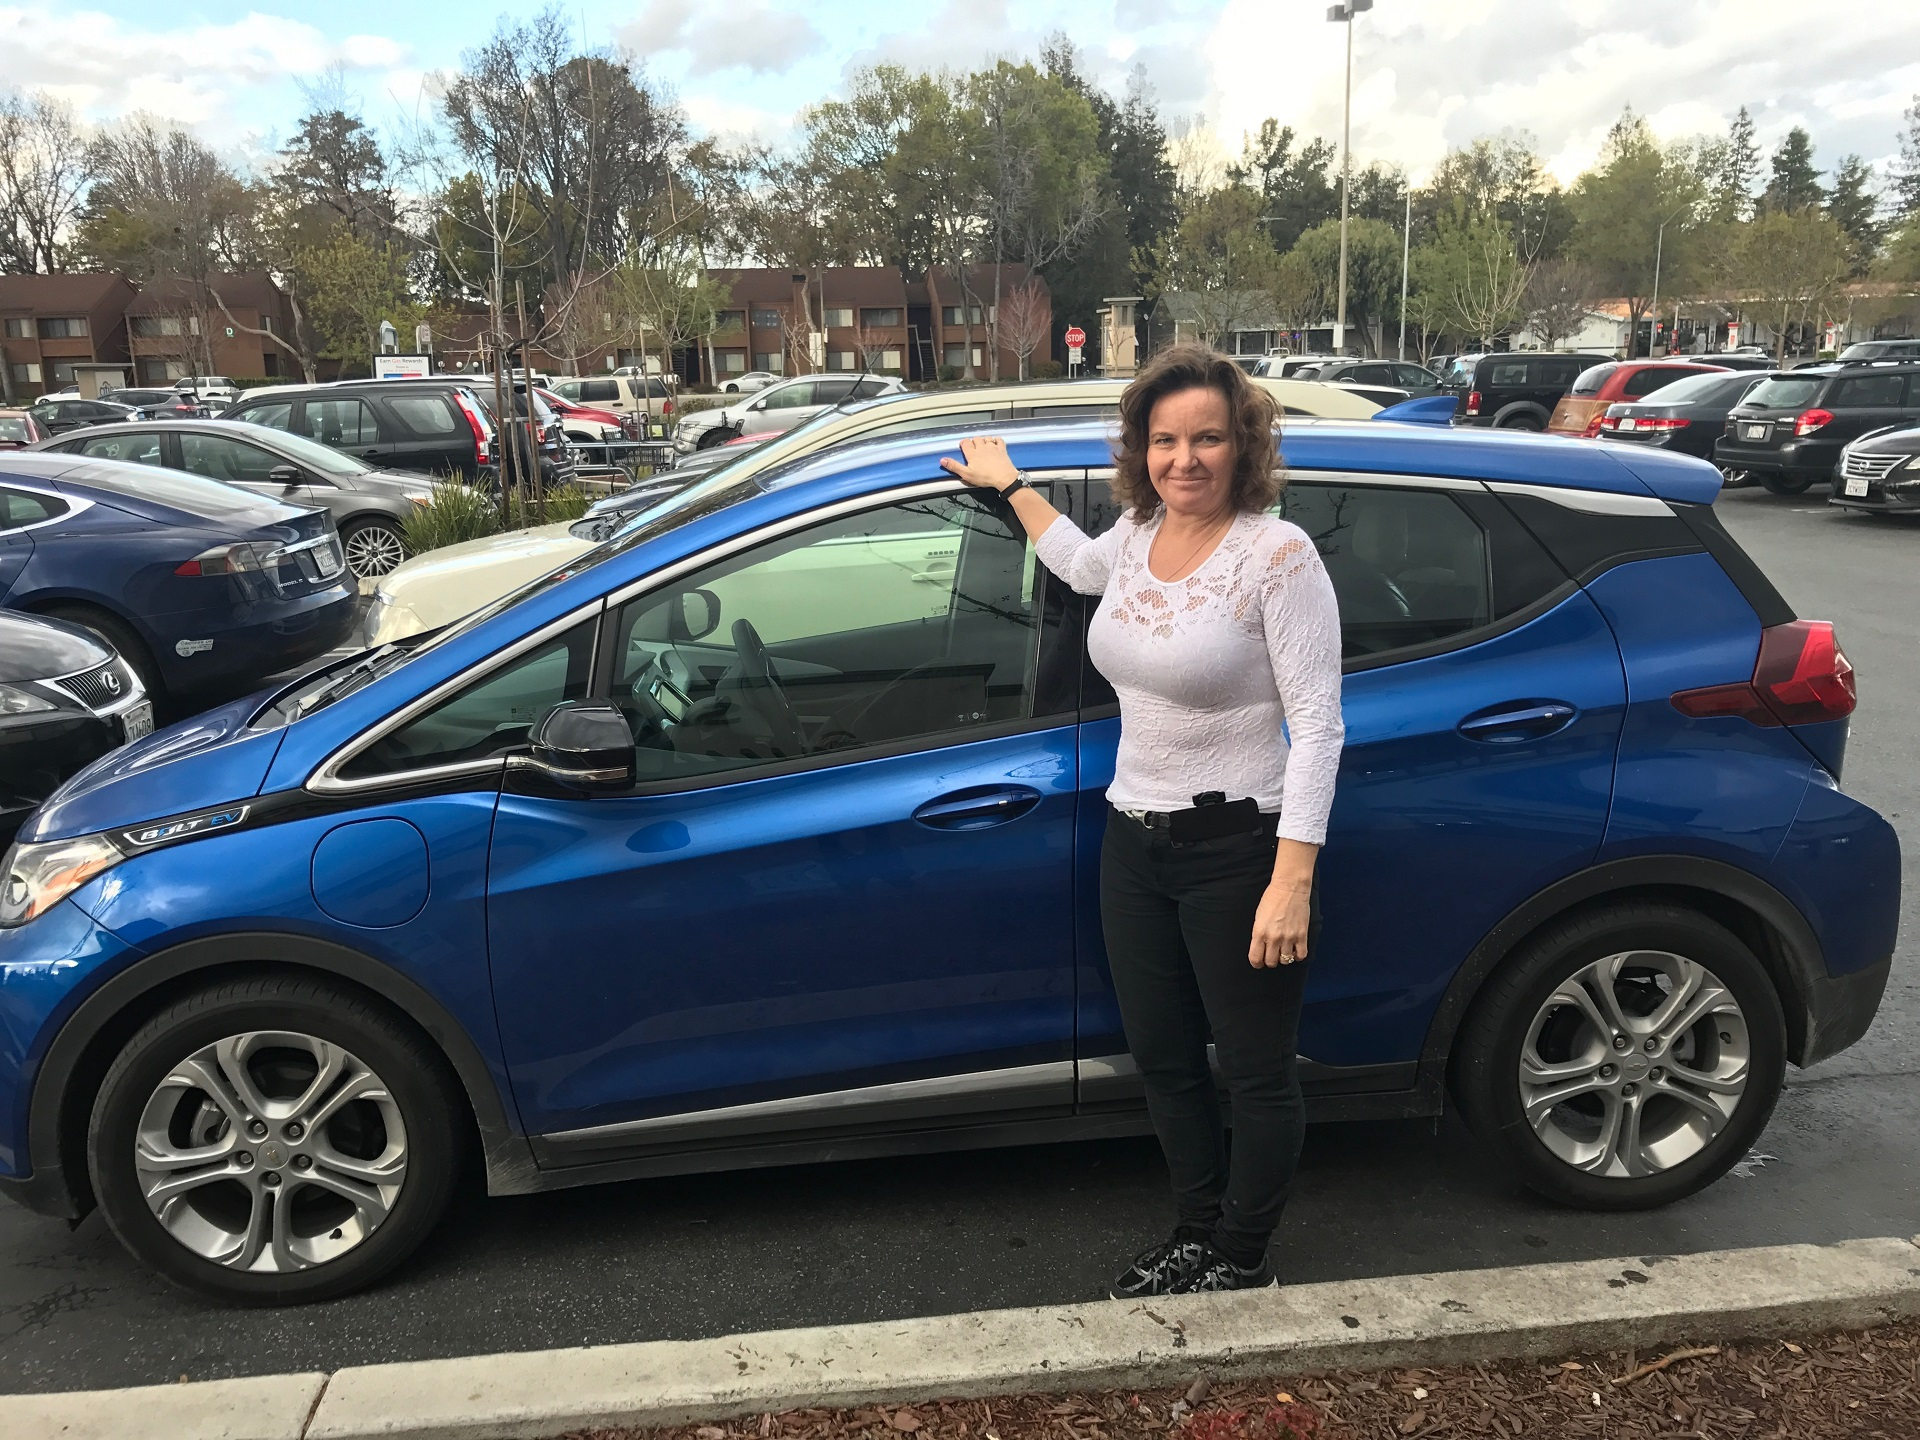 Chevy Bolt Ev 800 Mile Trip In 238 Electric Car Shows Challenges Remain